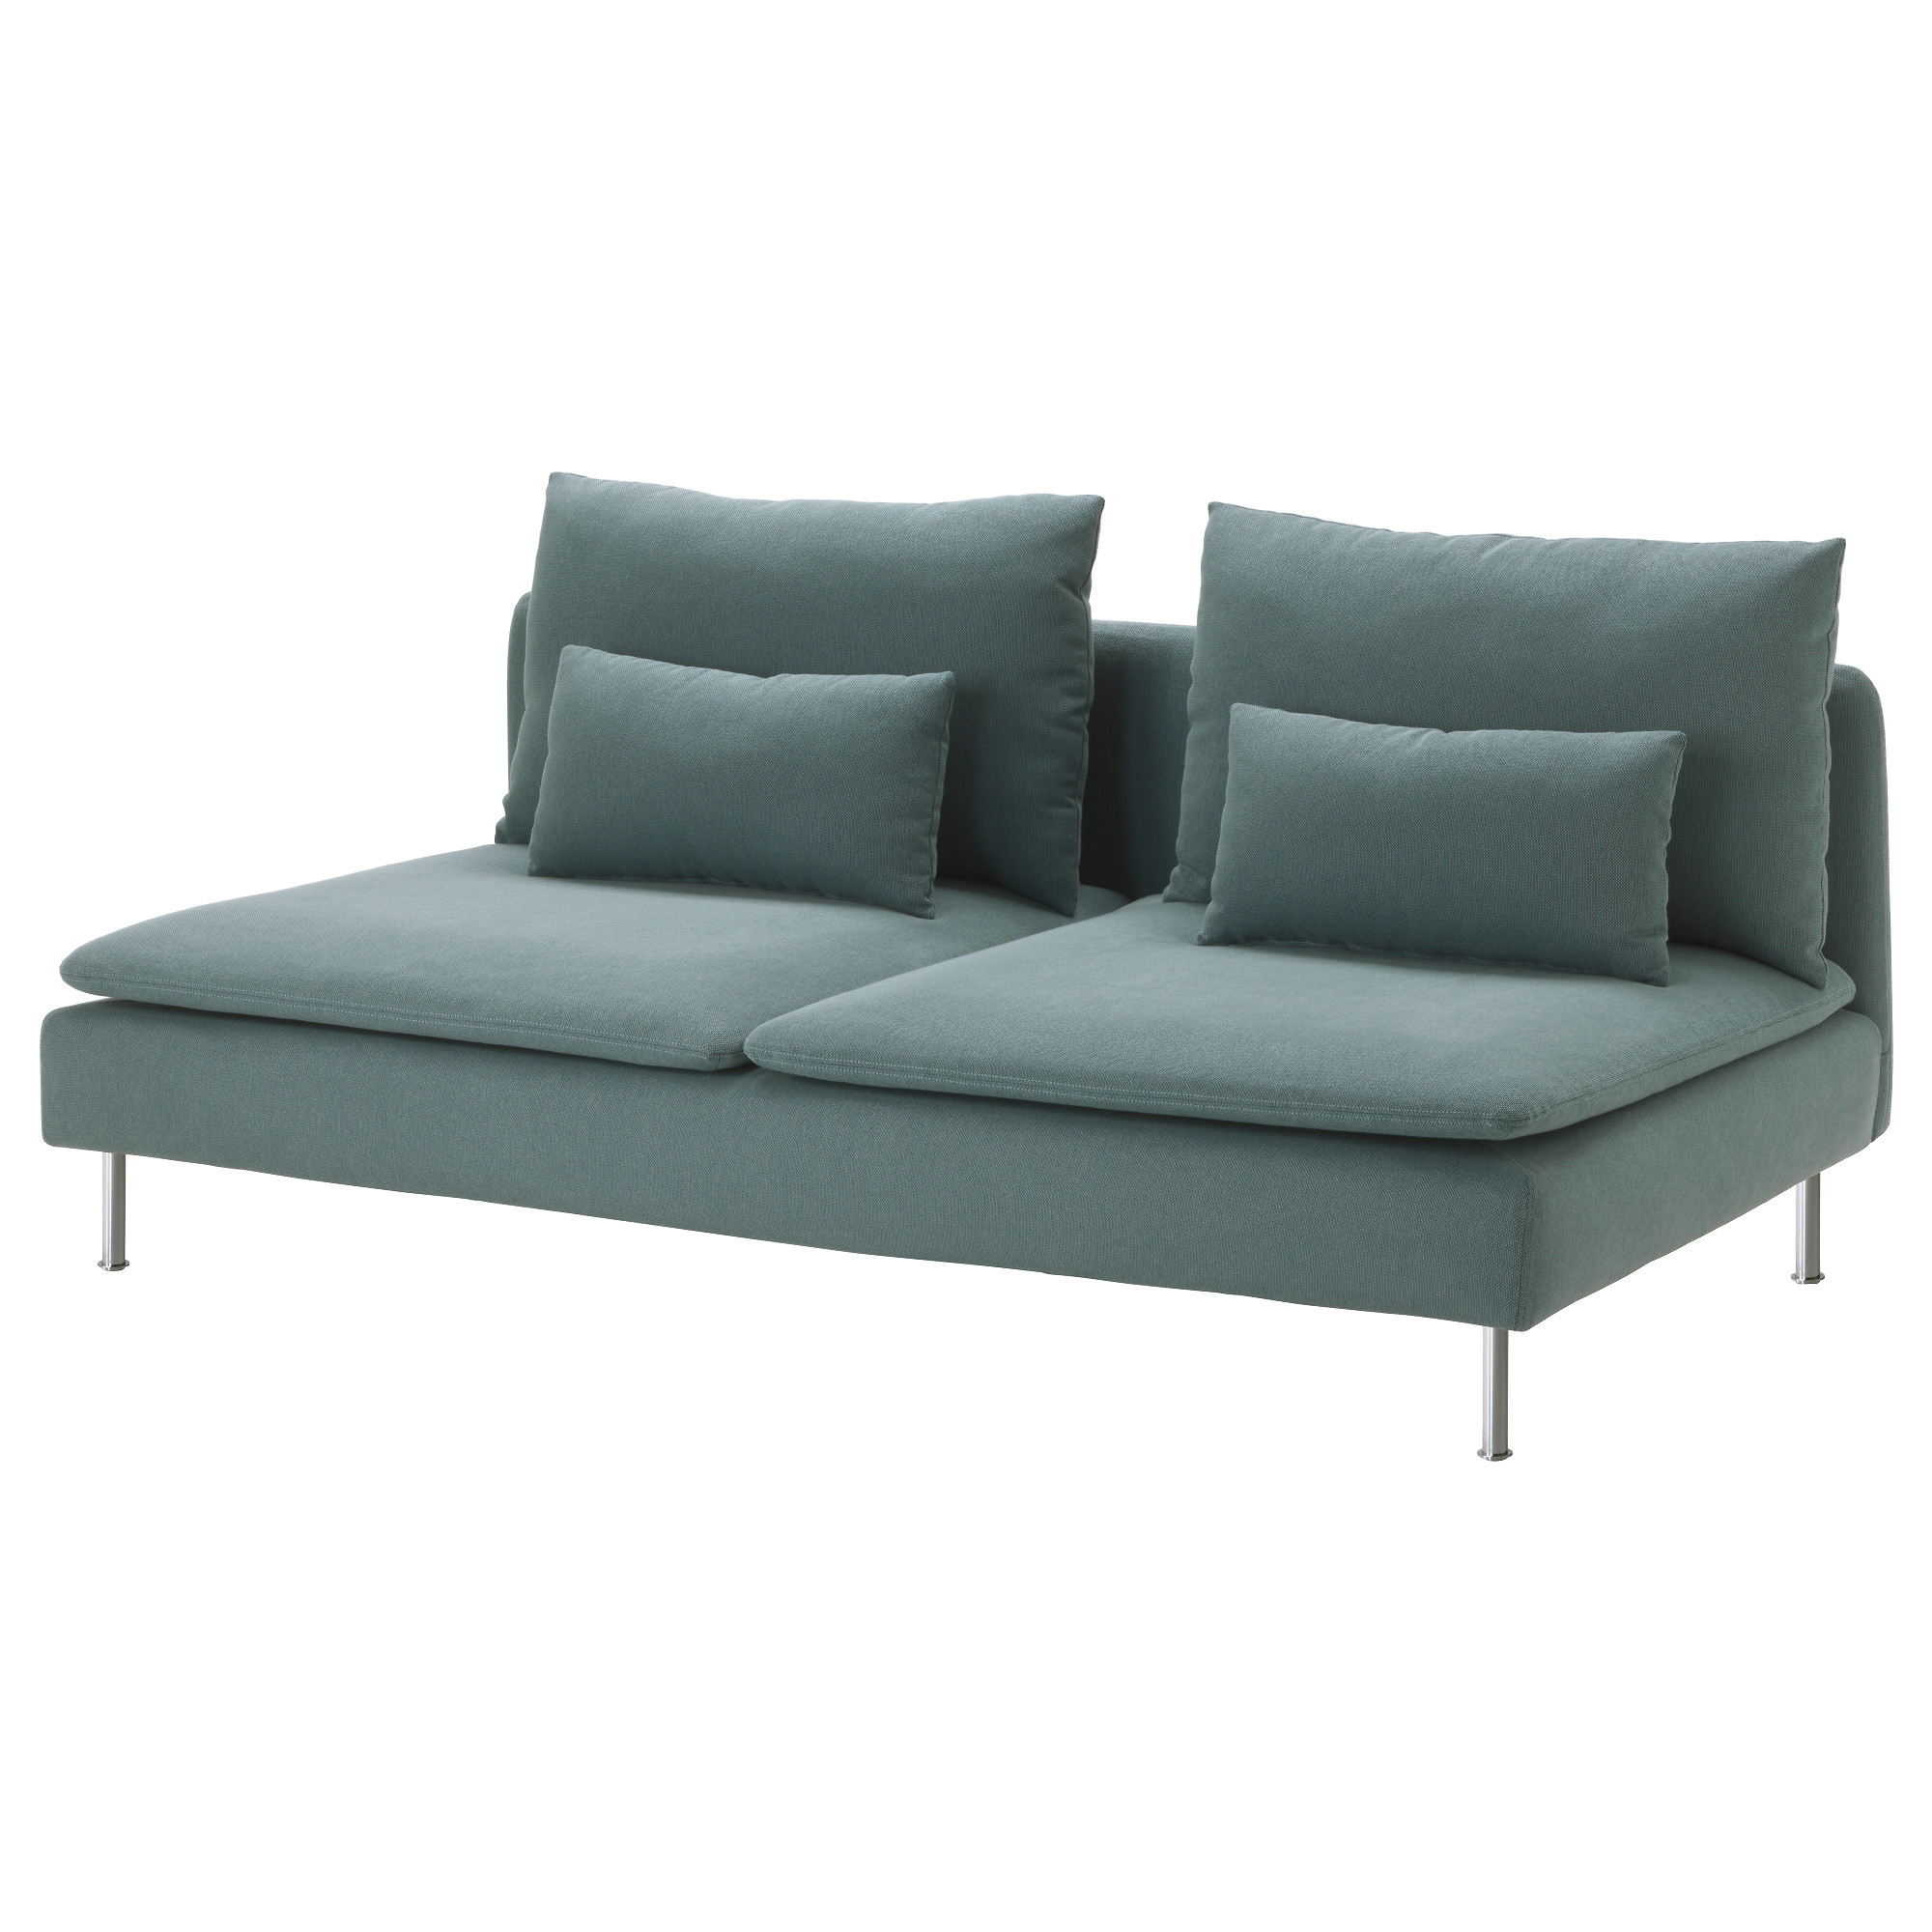 S–DERHAMN Sofa section Samsta dark gray IKEA